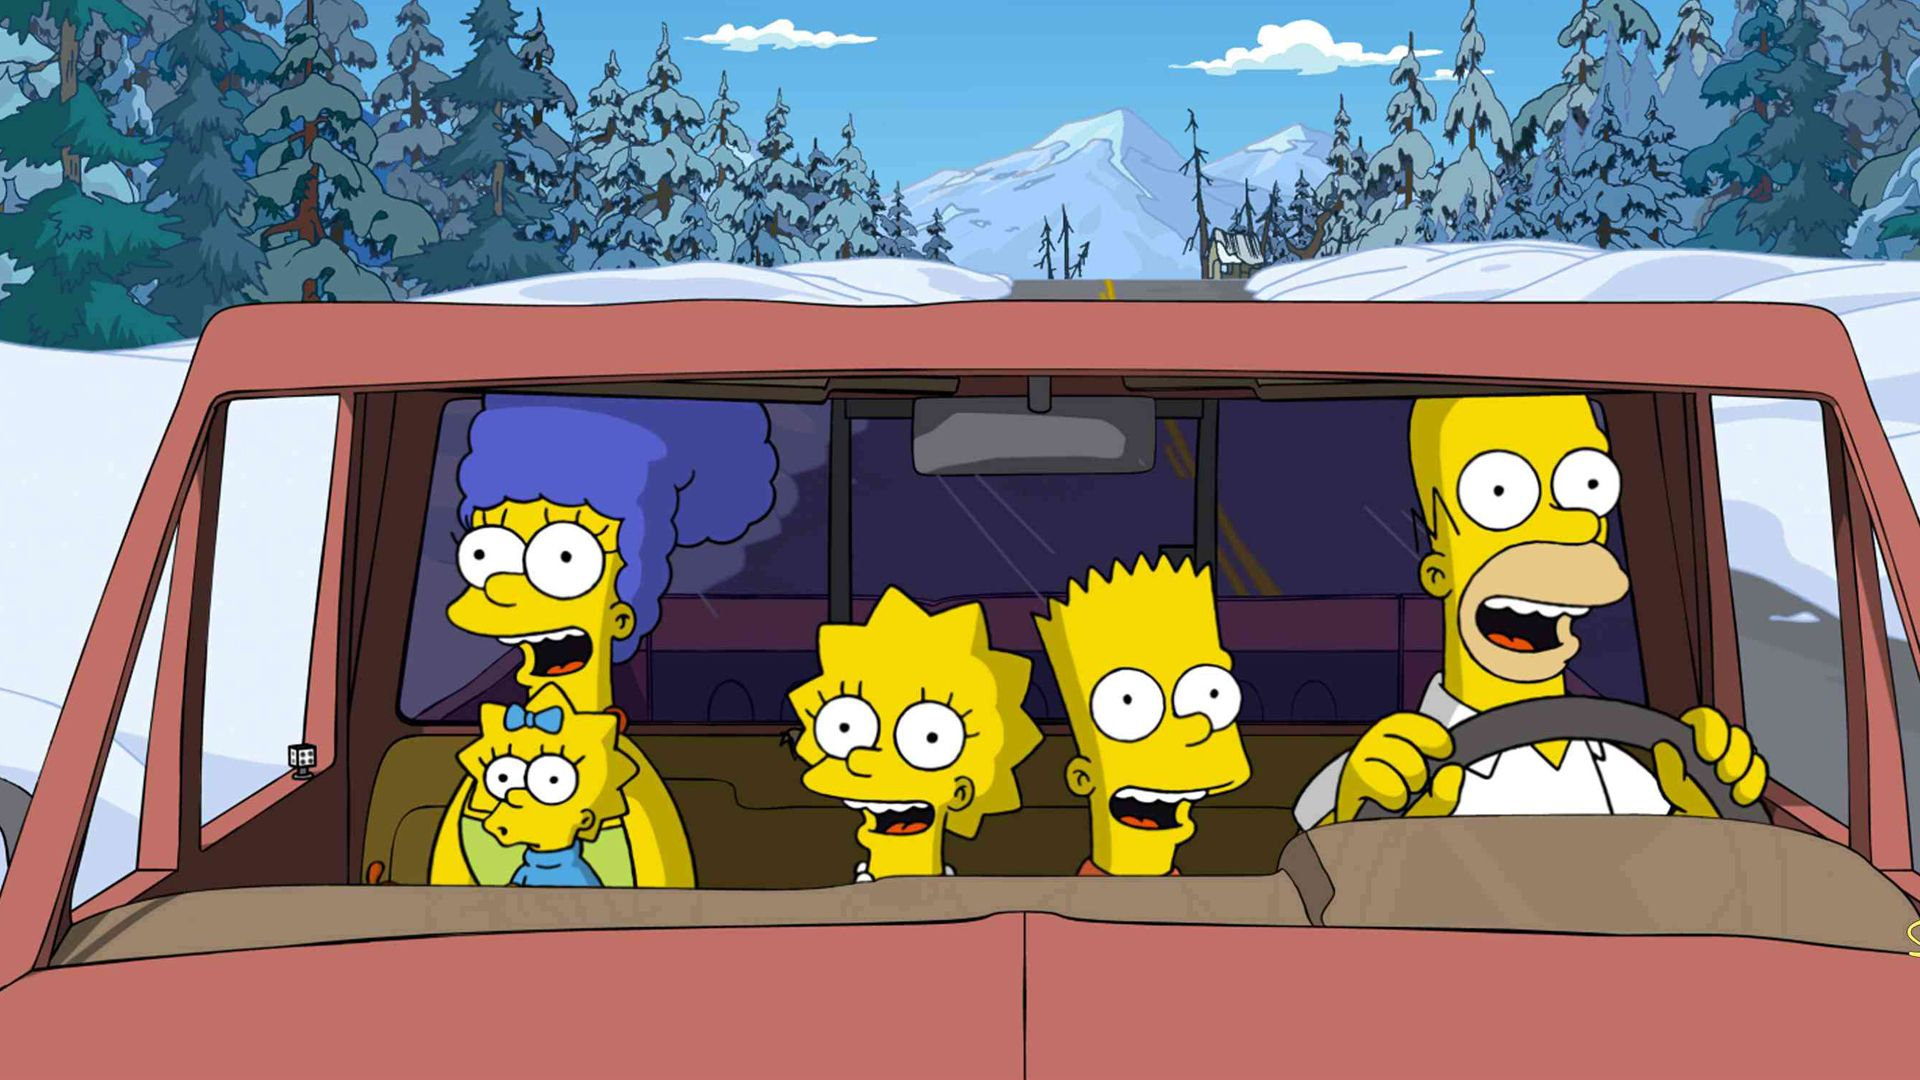 Simpsons Filme wallpaper   ForWallpapercom 1920x1080